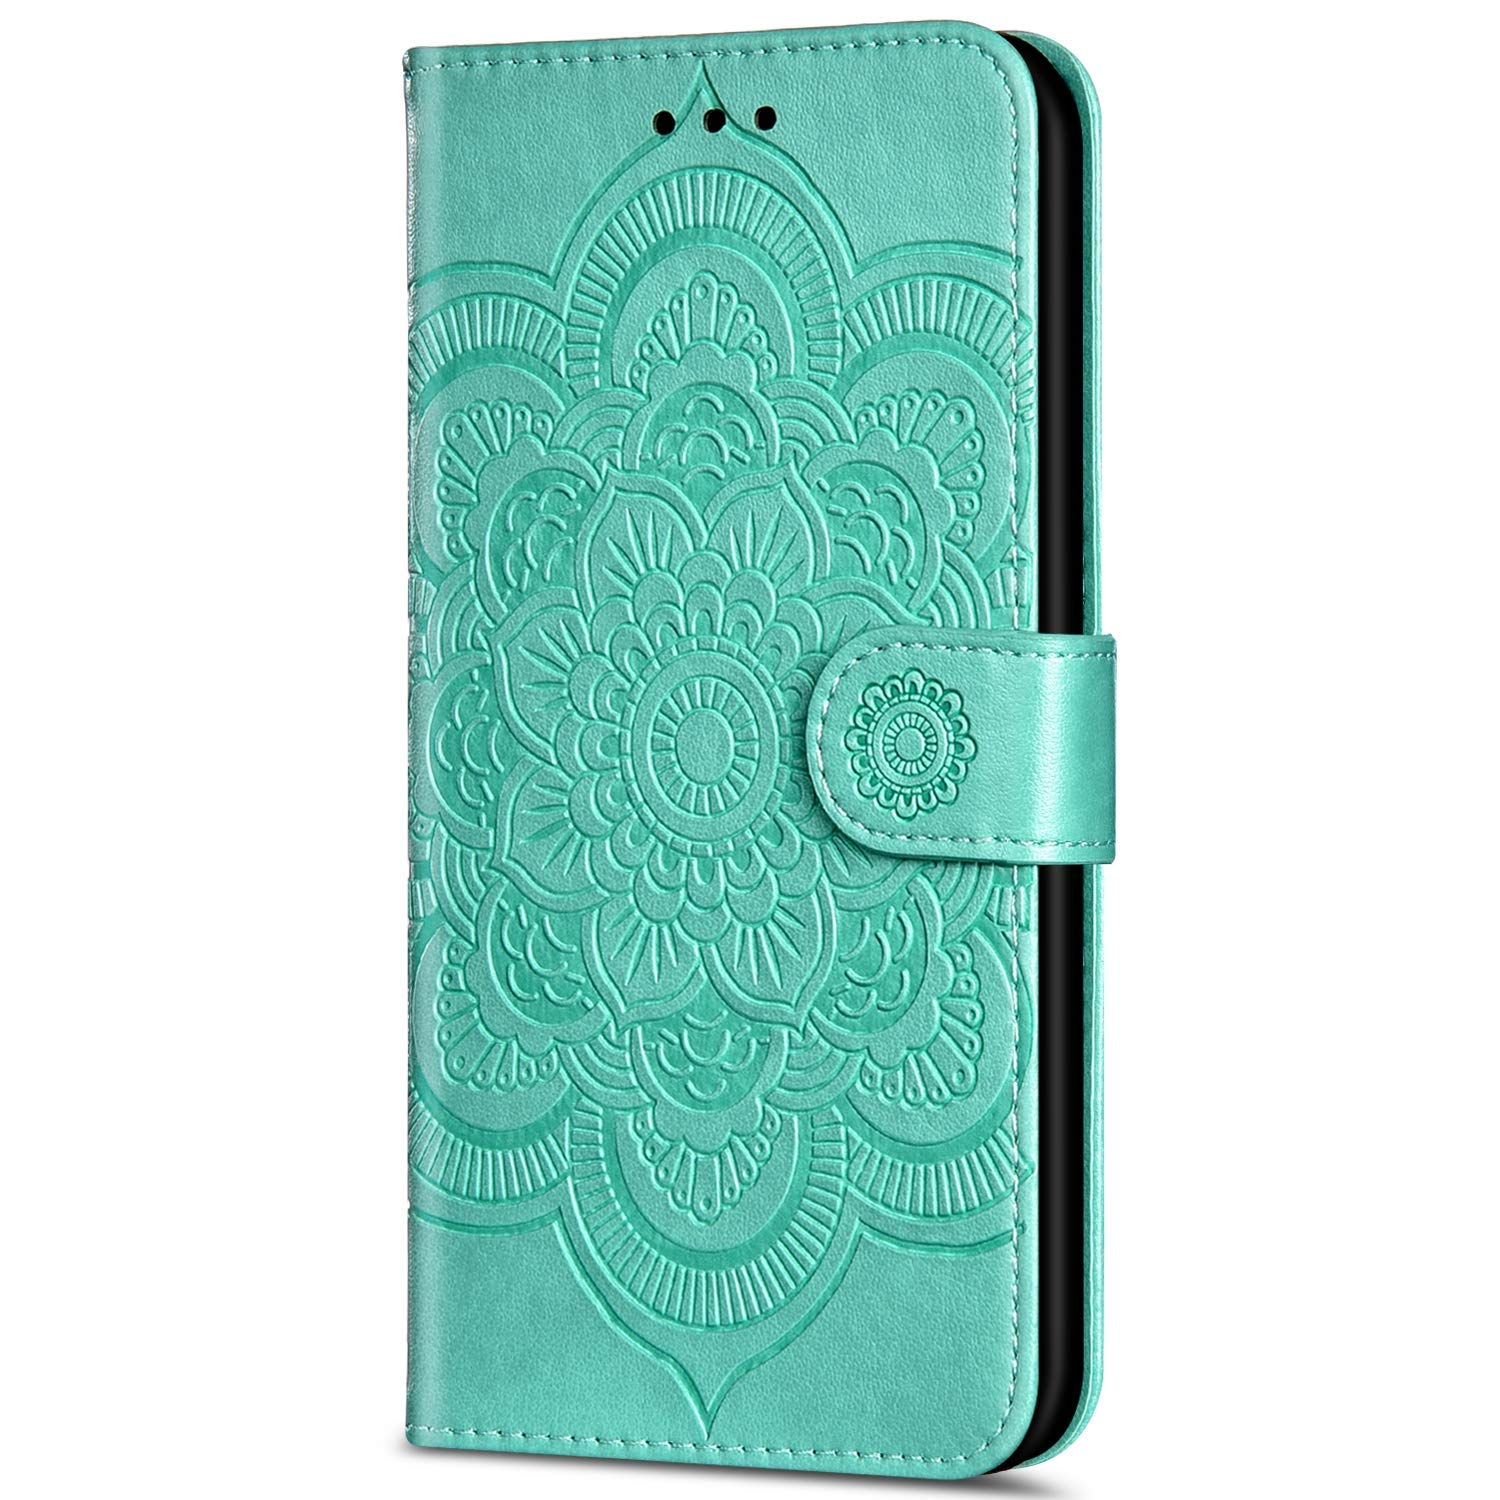 IKASEFU Compatible with iPhone 7 Plus//8 Plus Case Emboss Sun mandala Floral Pu Leather Wallet Strap Case Card Slots Shockproof Magnetic Stand Feature Folio Flip Book Cover Protective Case,Black